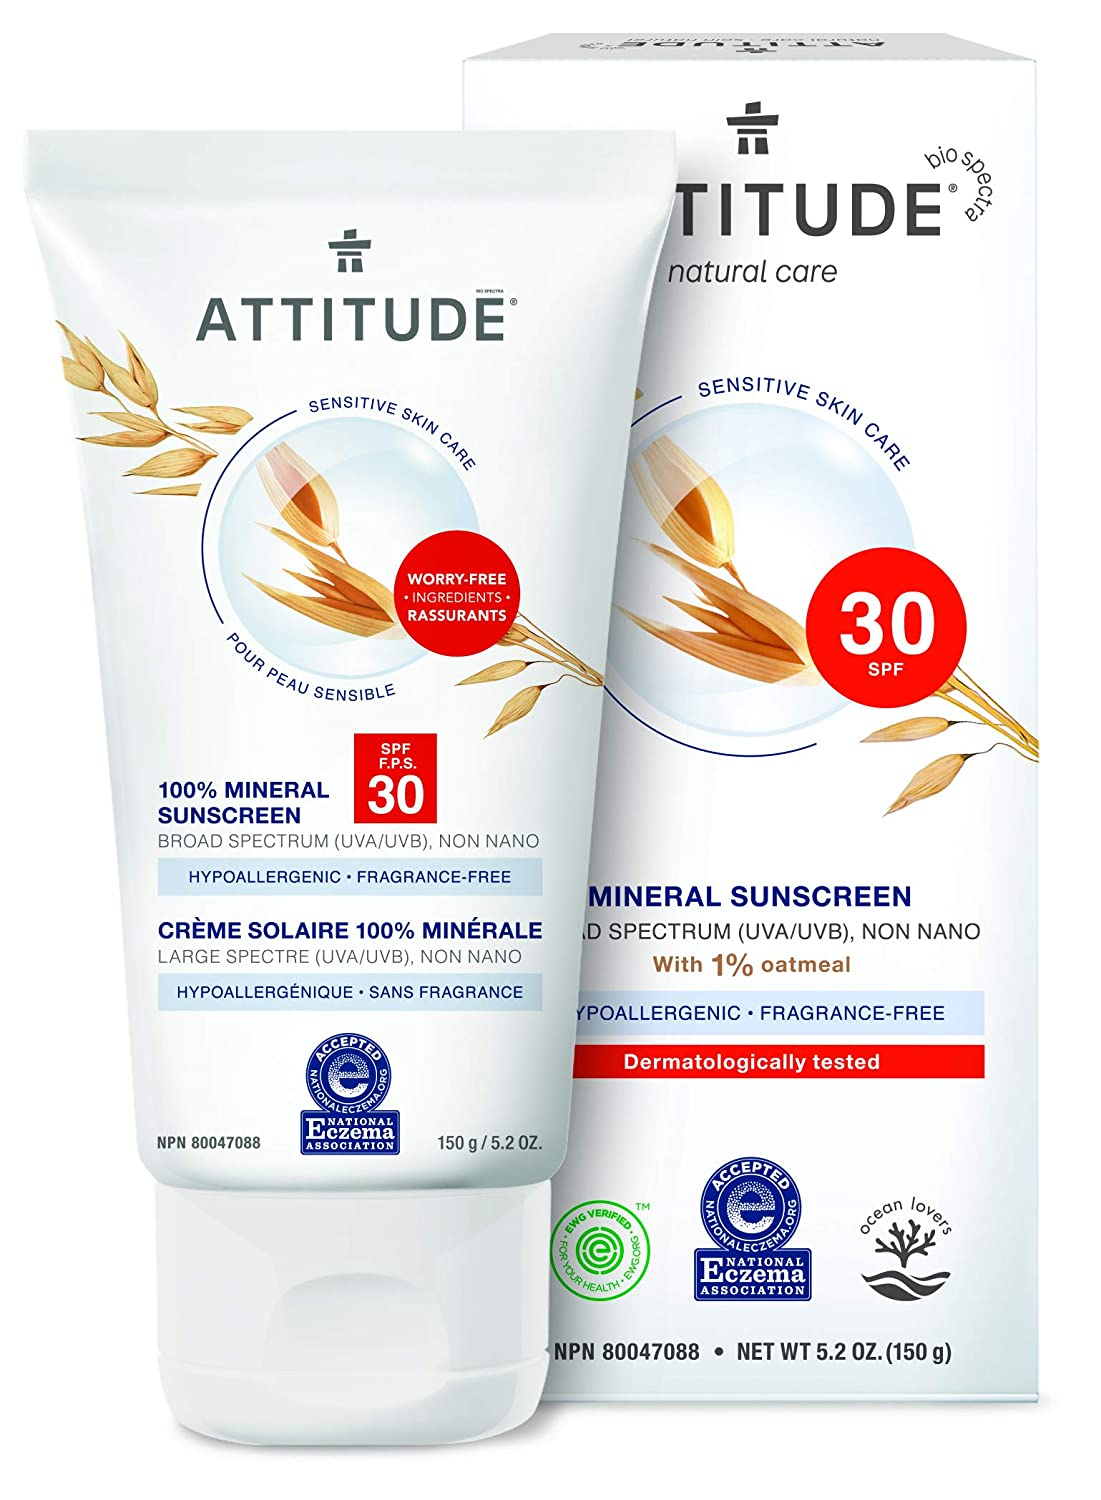 ATTITUDE Sensitive Skin, Hypoallergenic Mineral Sunscreen, SPF 30, Fragrance Free, 5.2 oz